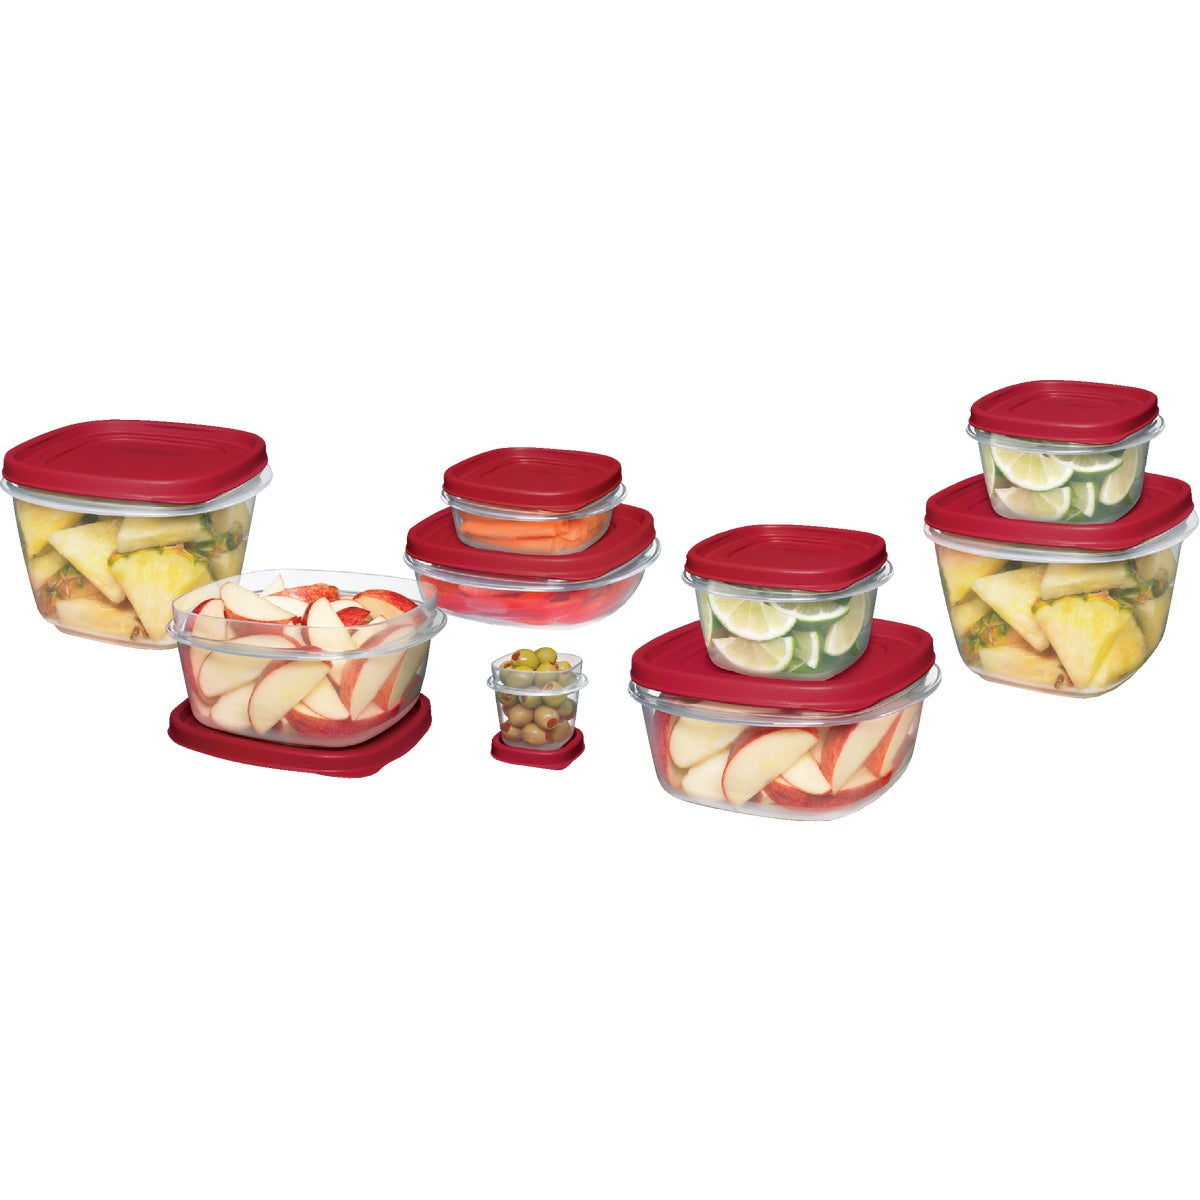 24PC FOOD STORAGE SET - 1779217 by Rubbermaid Home